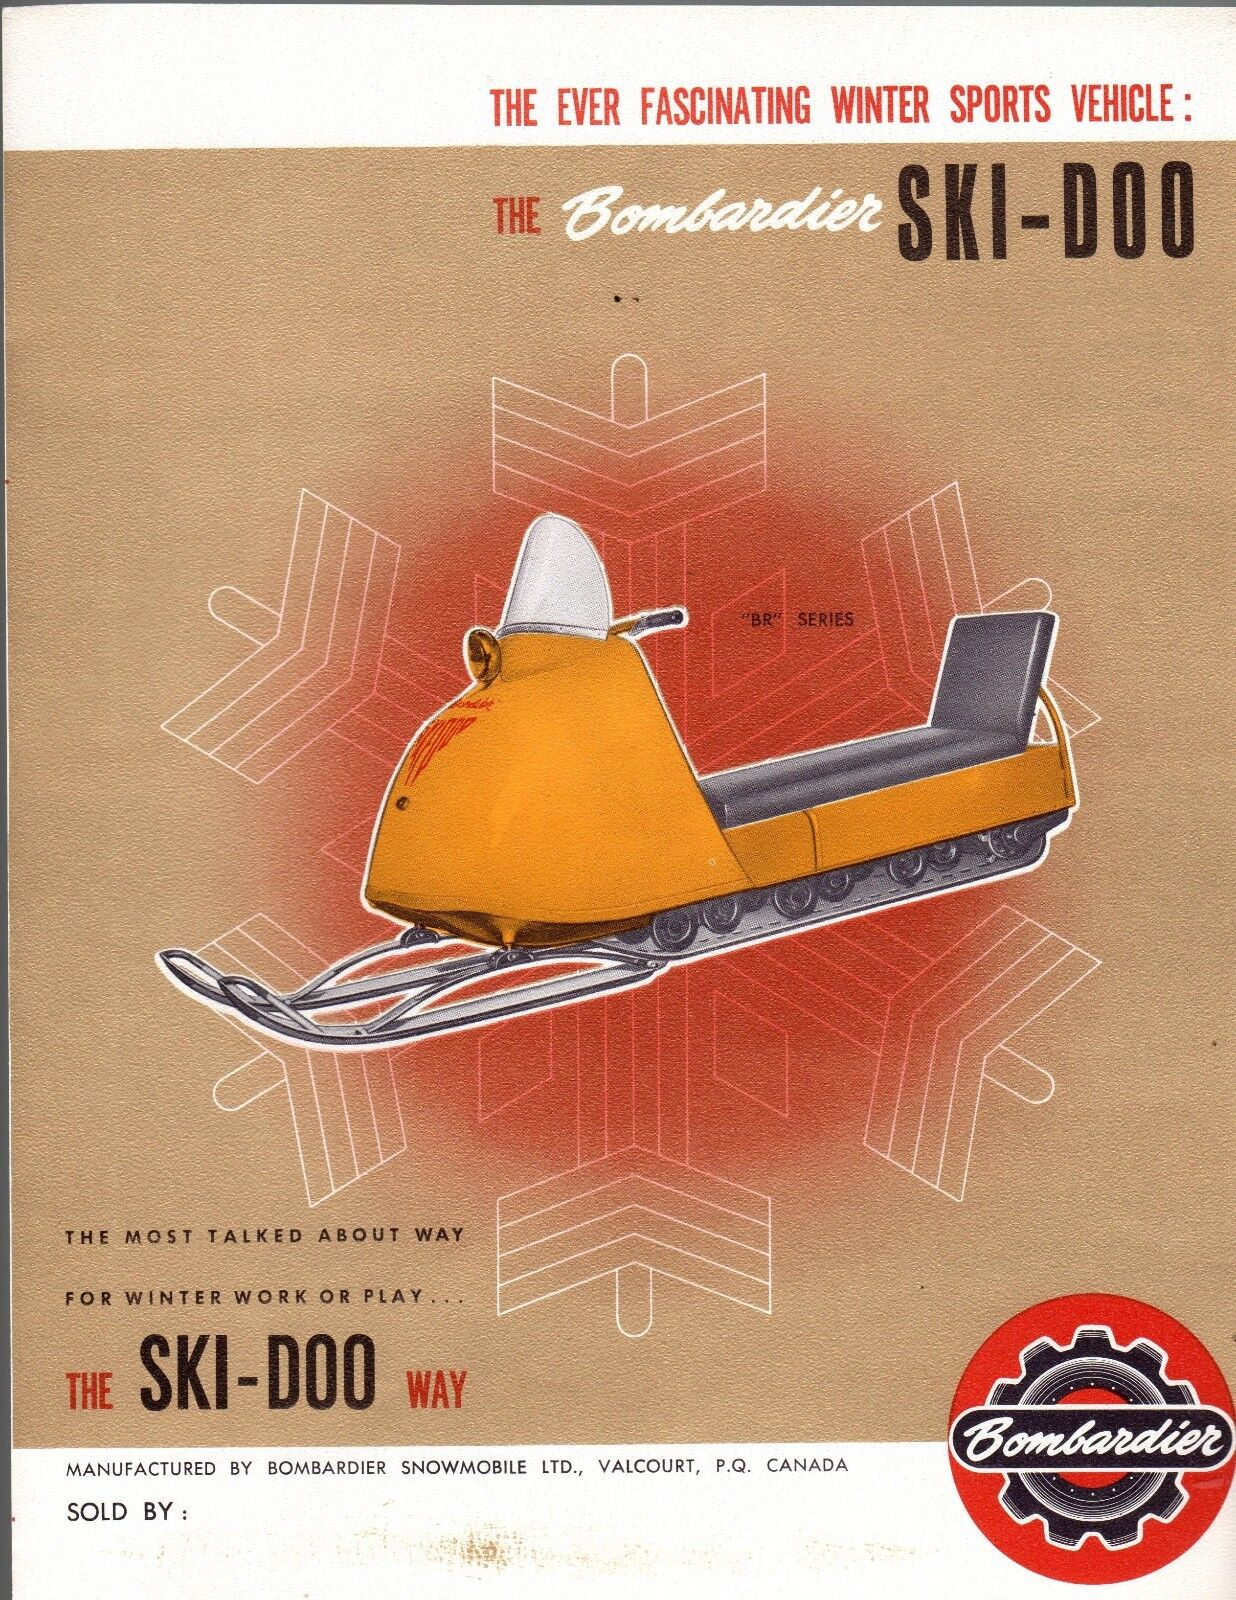 RARE  VINTAGE 1964 SKI-DOO SNOWMOBILE SALES BROCHURE 4 PAGES VERY NICE  (980)  after-sale protection